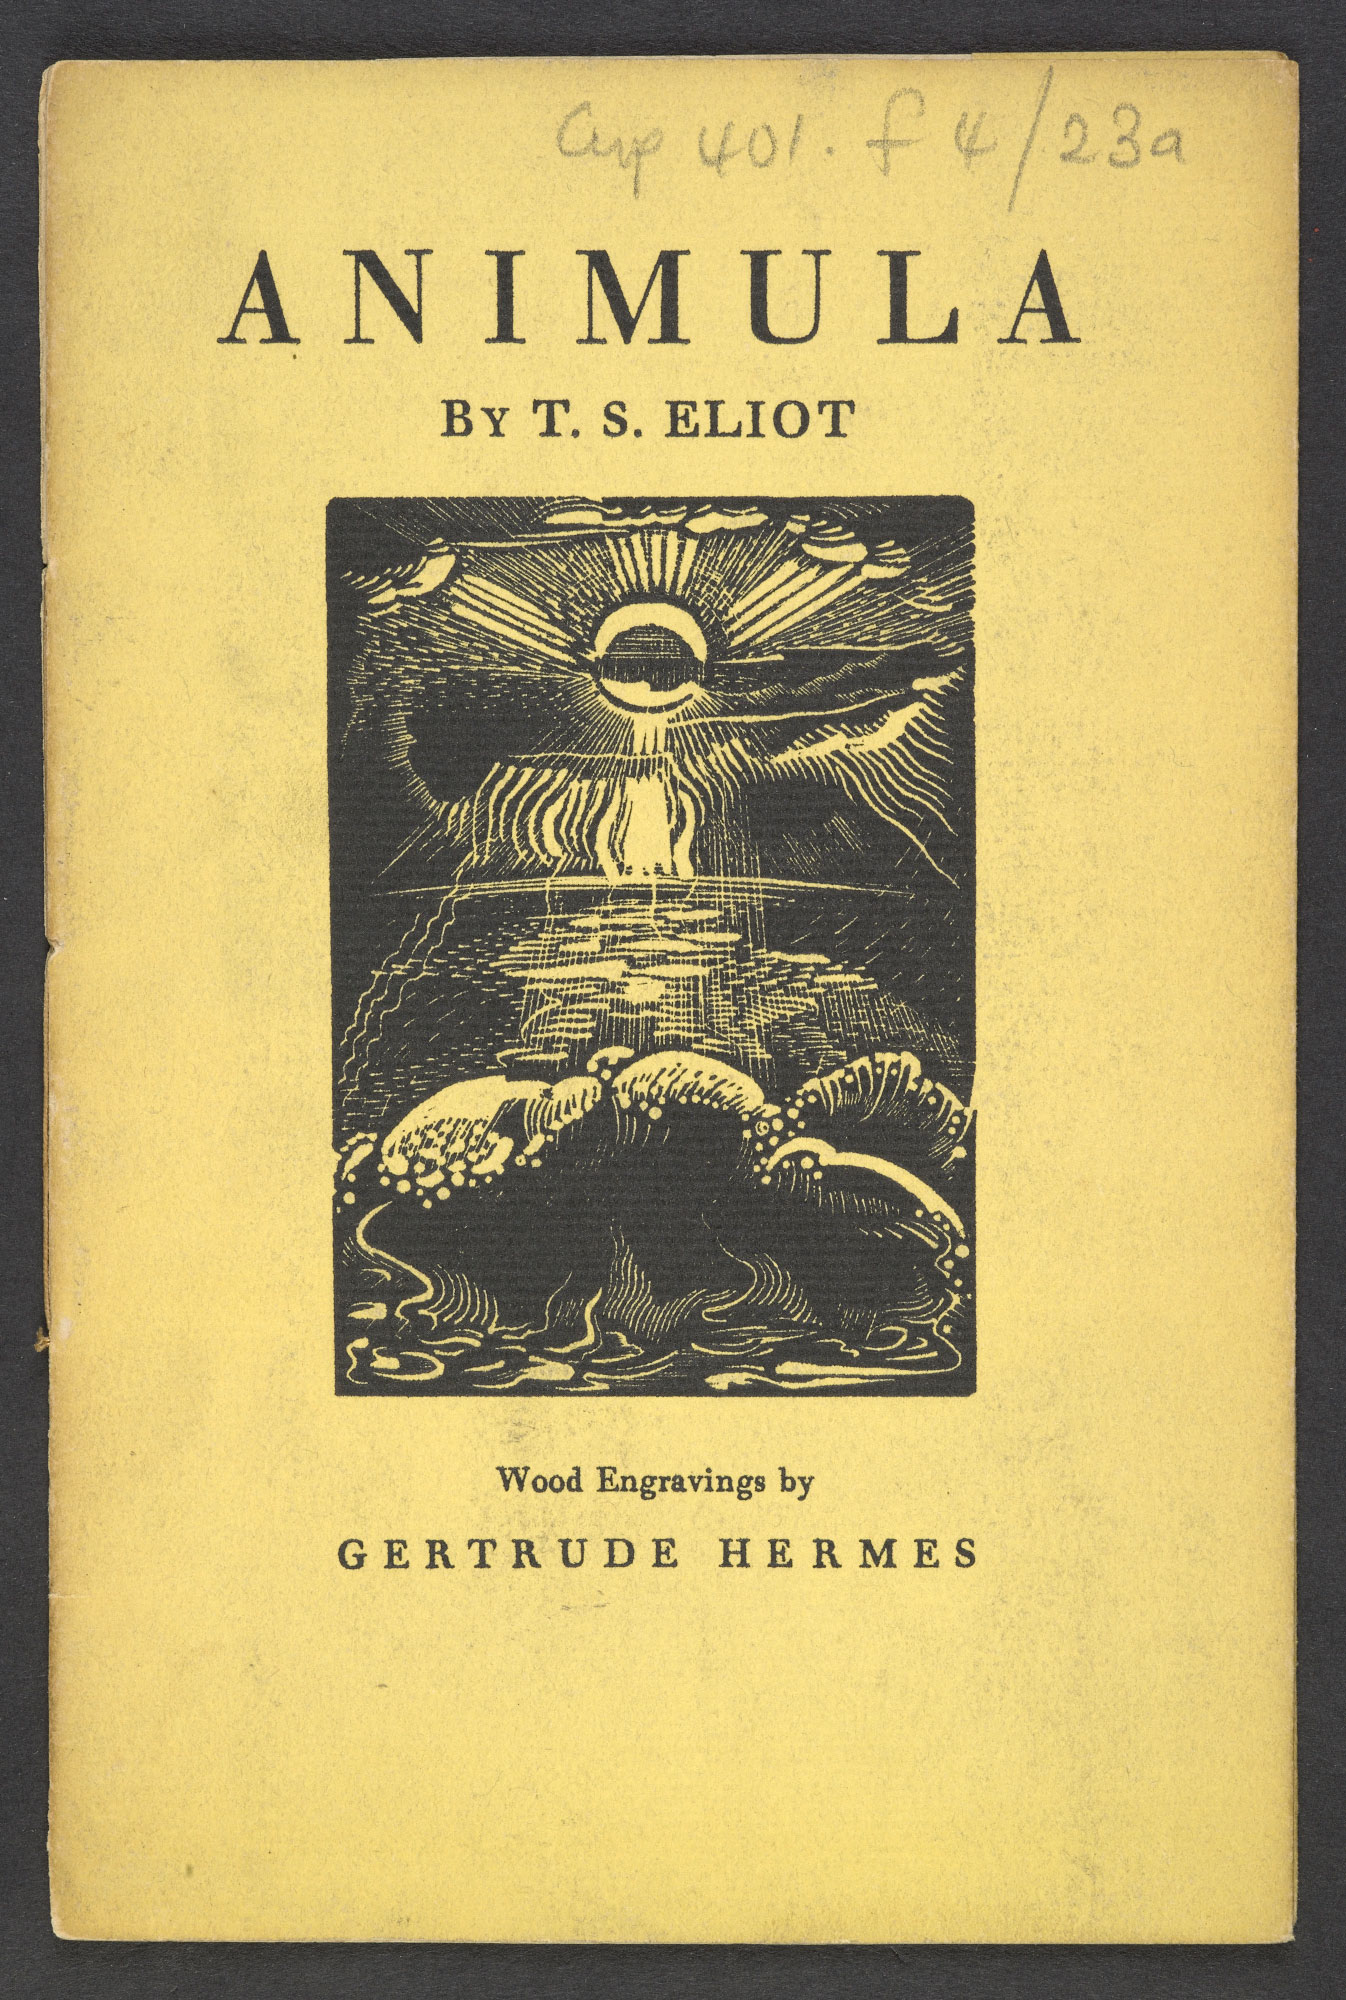 'Animula' by T S Eliot illustrated by Gertrude Hermes